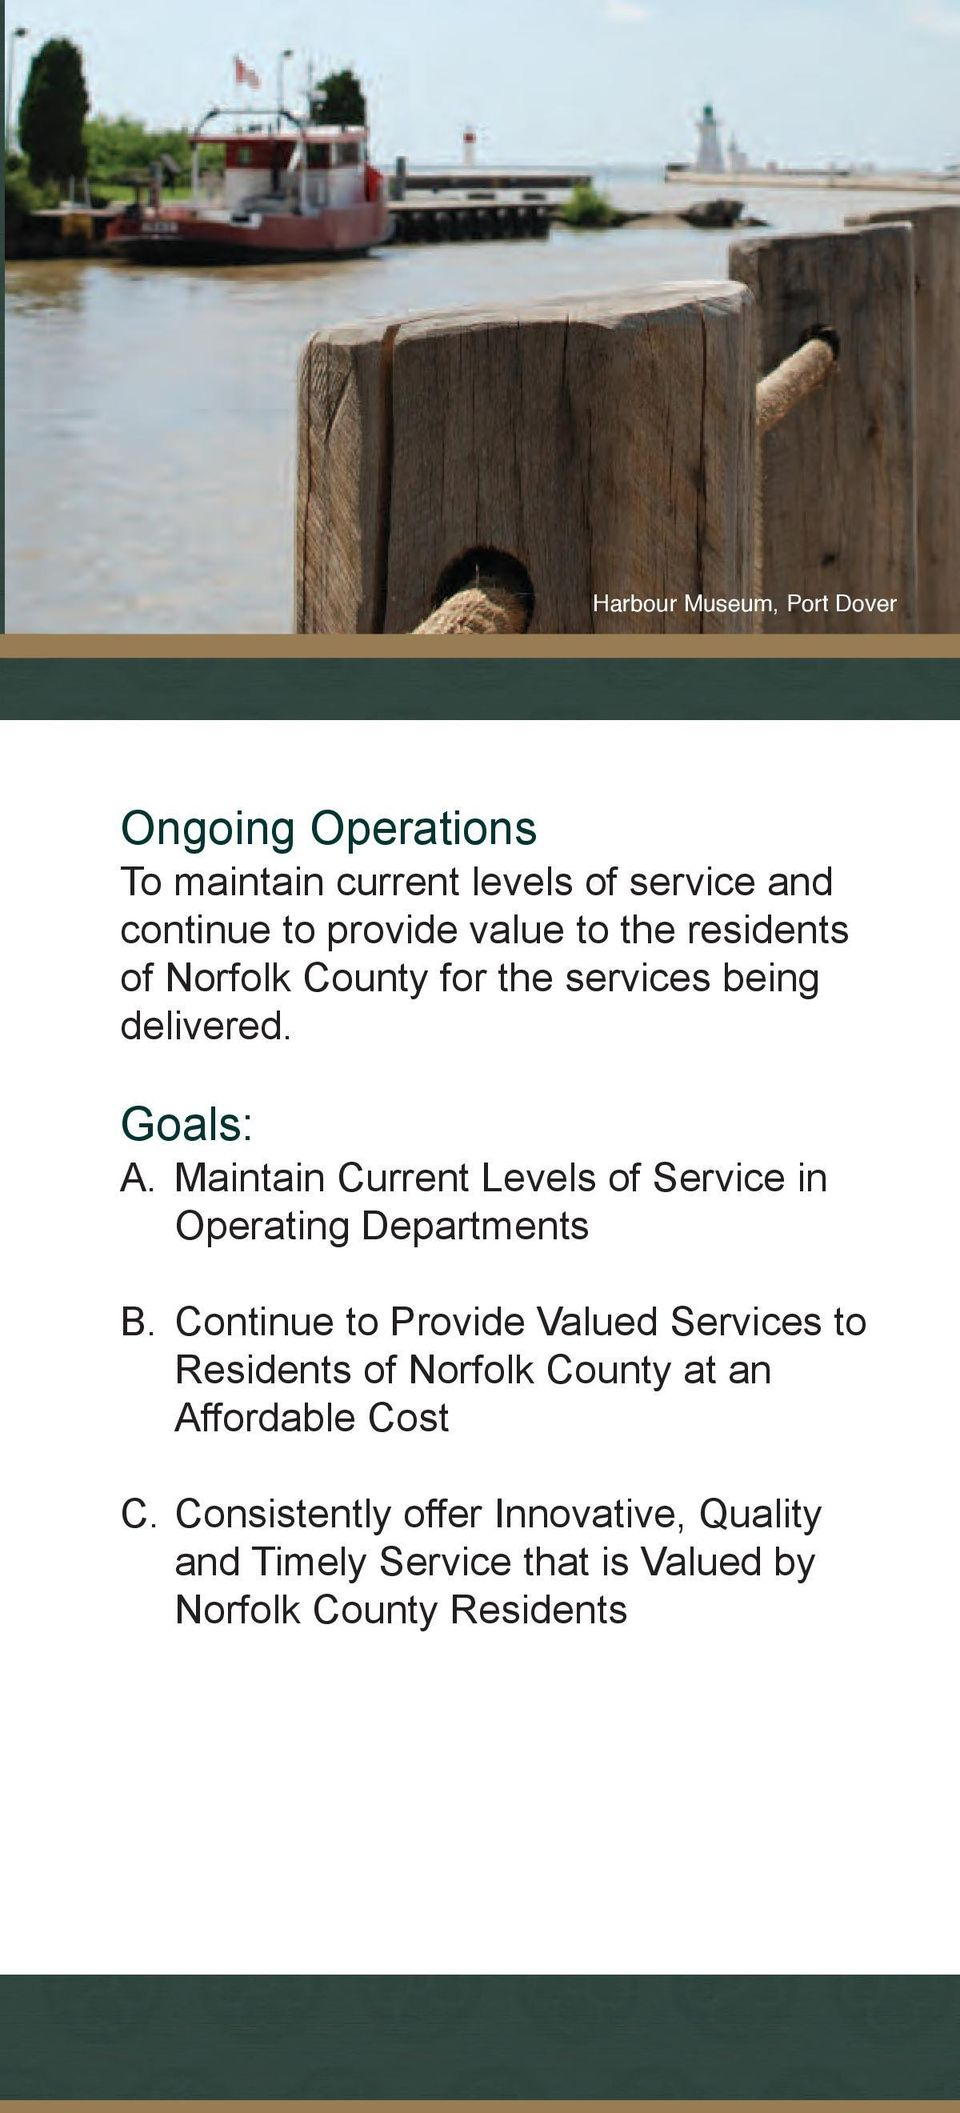 Maintain Current Levels of Service in Operating Departments B.